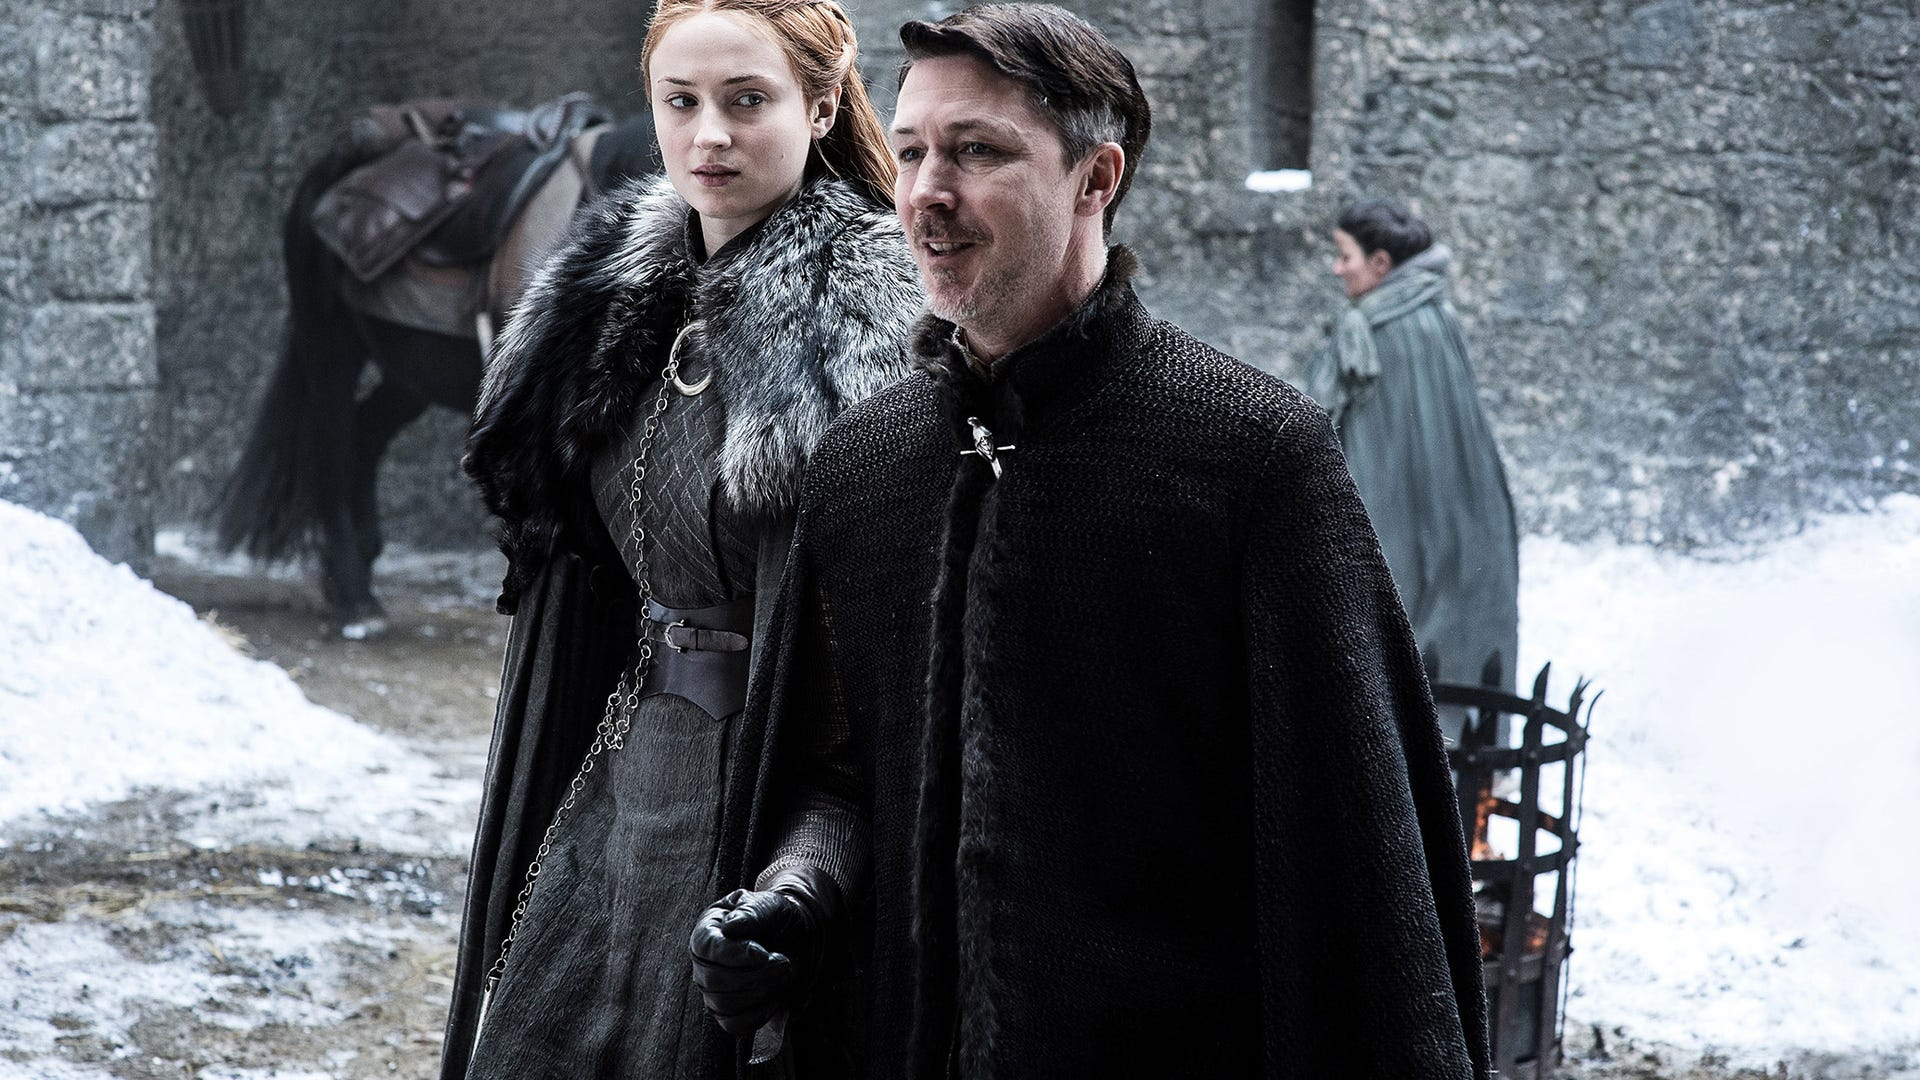 Sophie Turner and Aidan Gillen, Game of Thrones